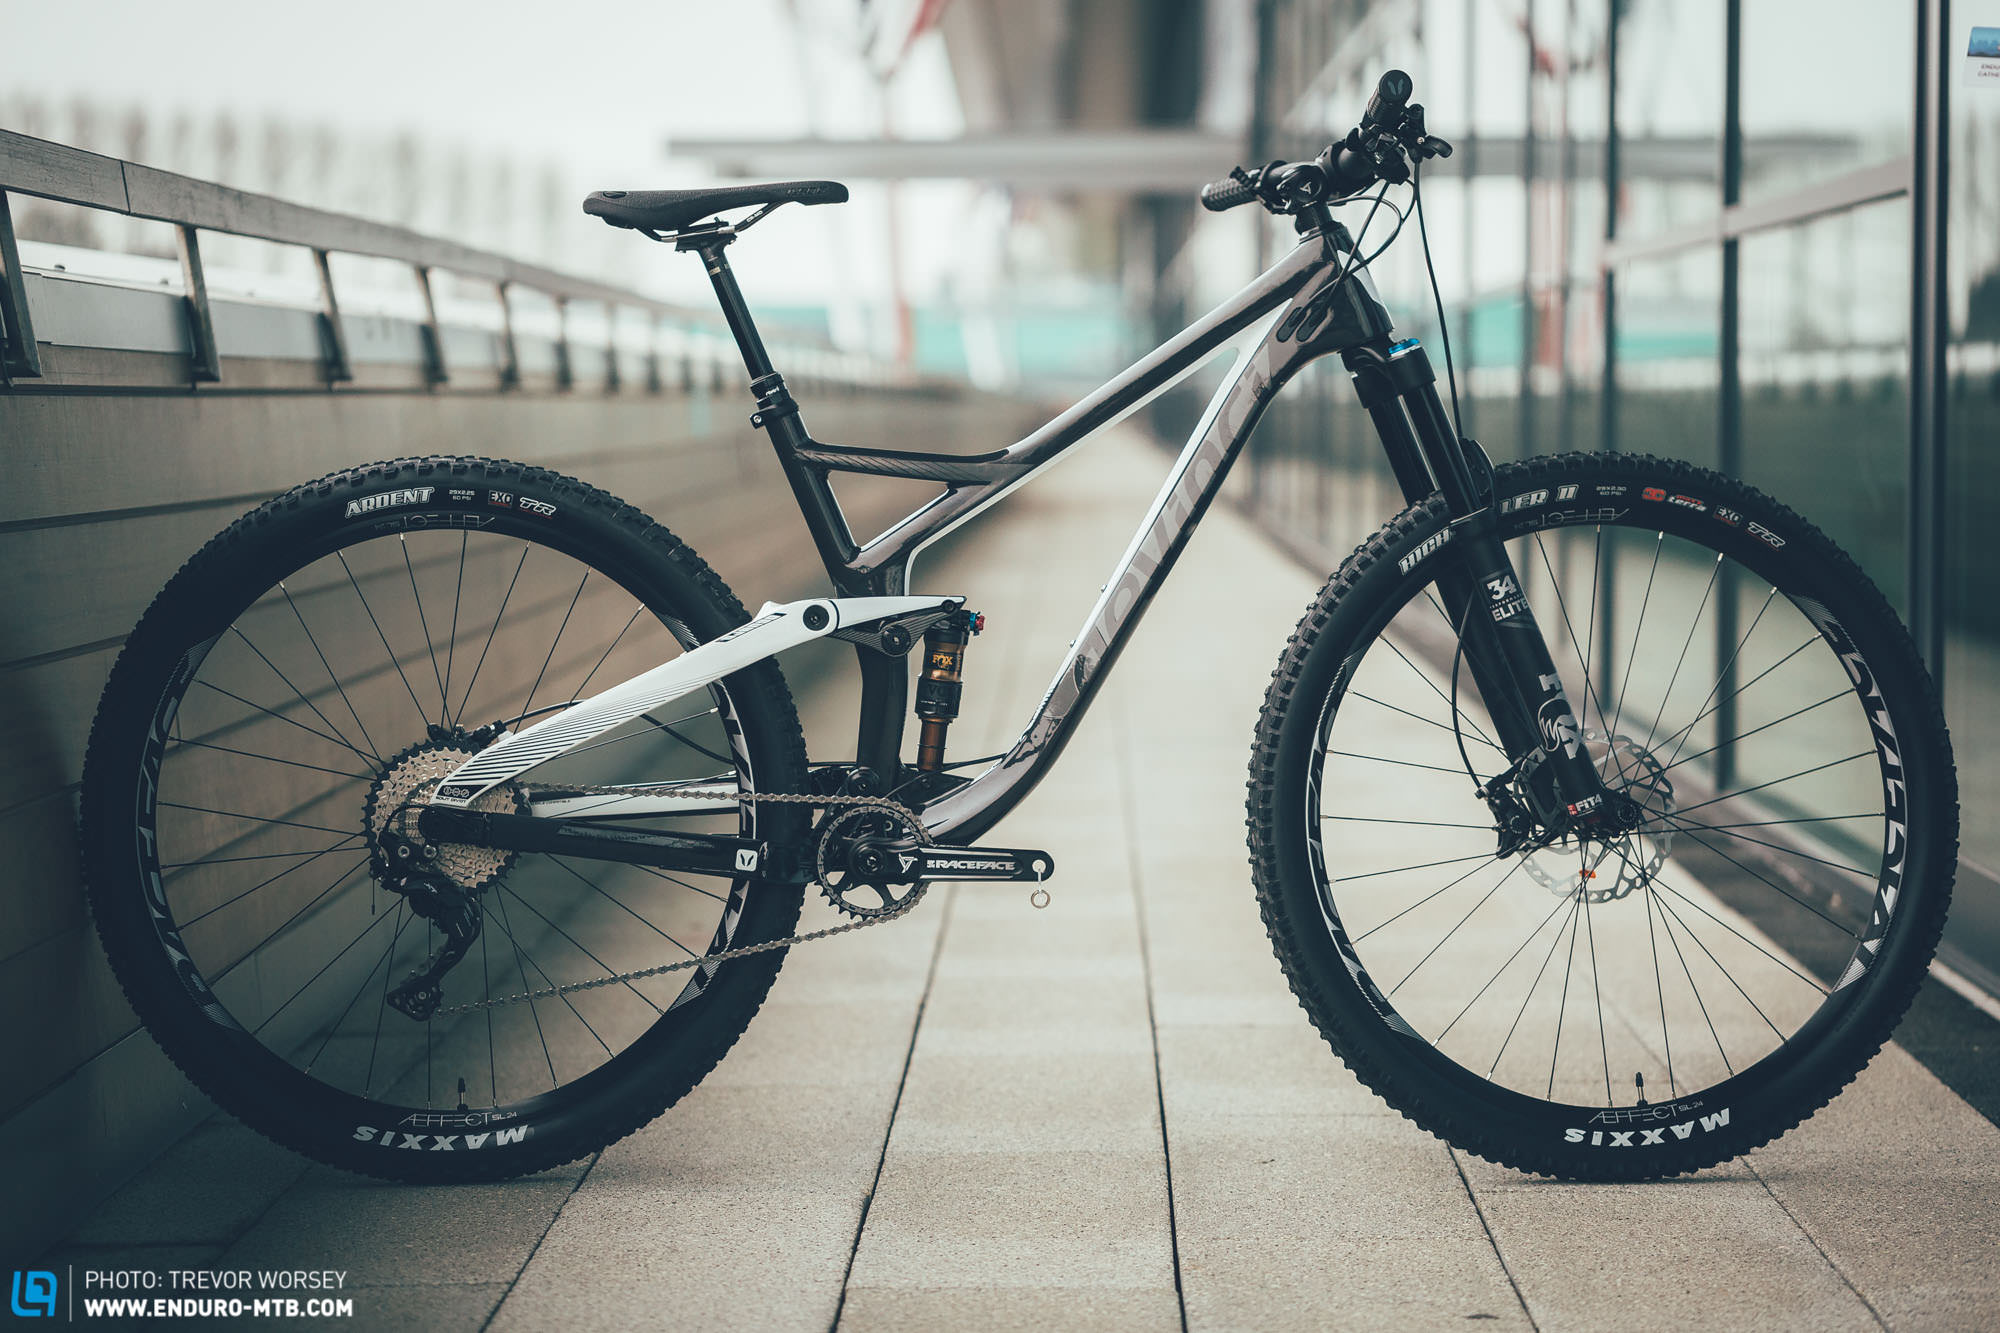 Hottest Products from the Bike Place Show   ENDURO Mountainbike Magazine